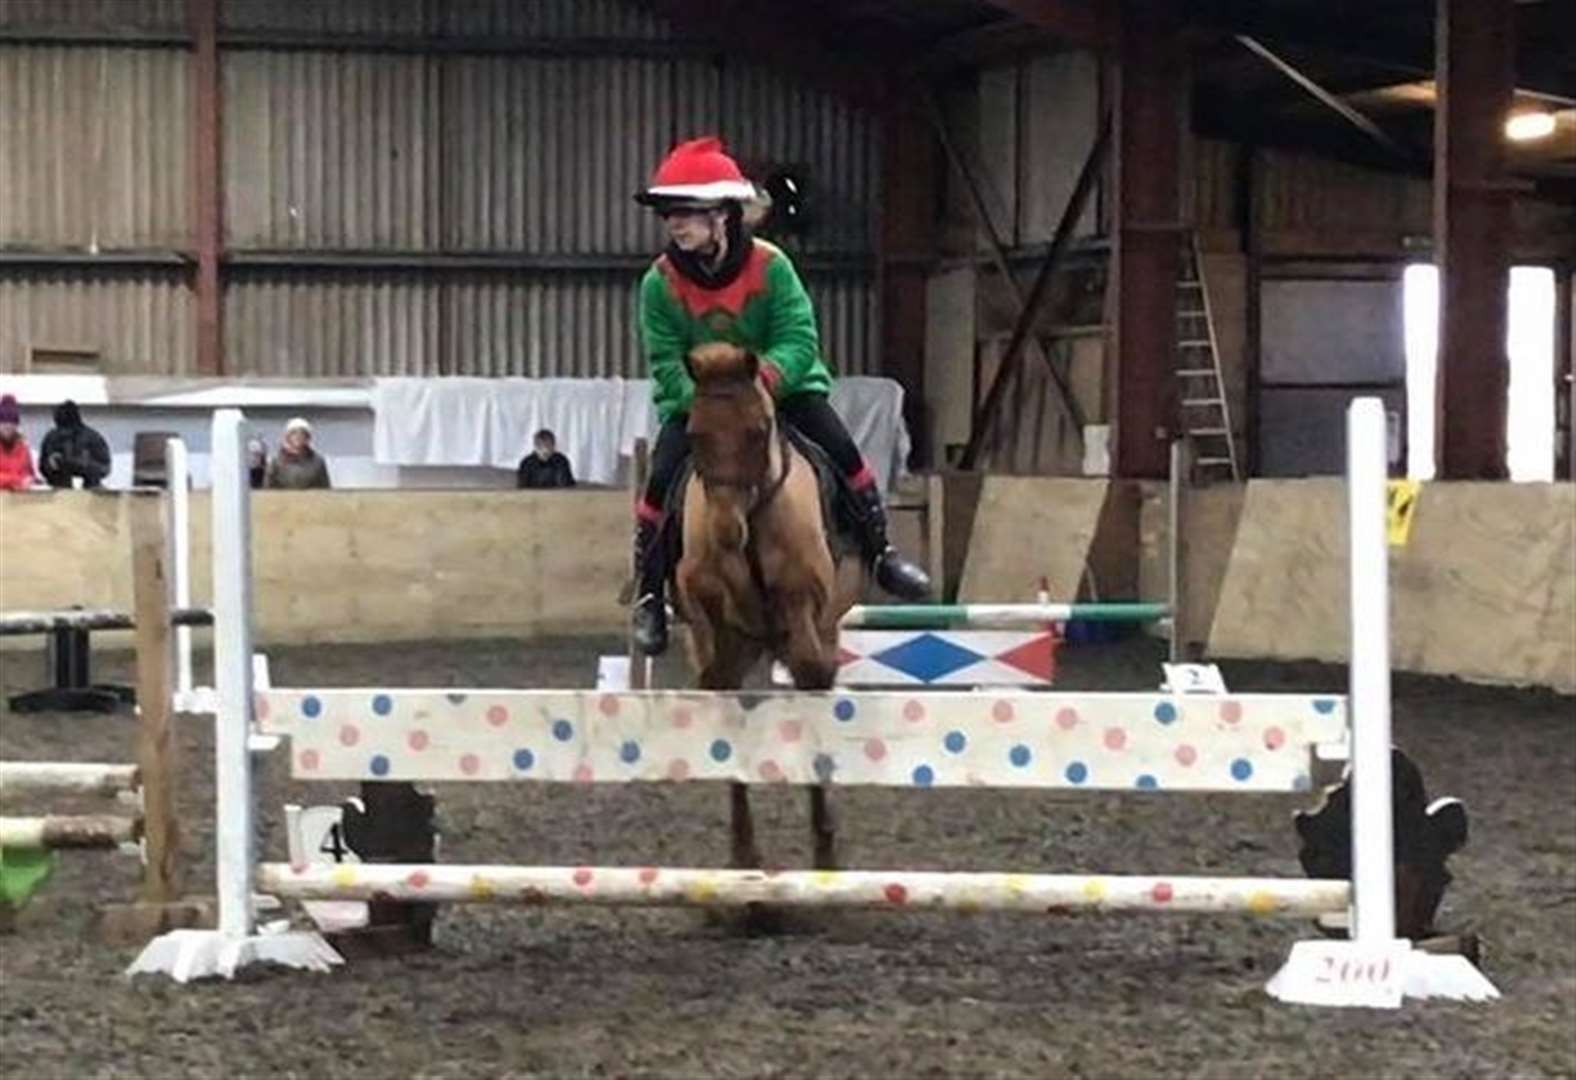 Riders get in the festive spirit at Halkirk